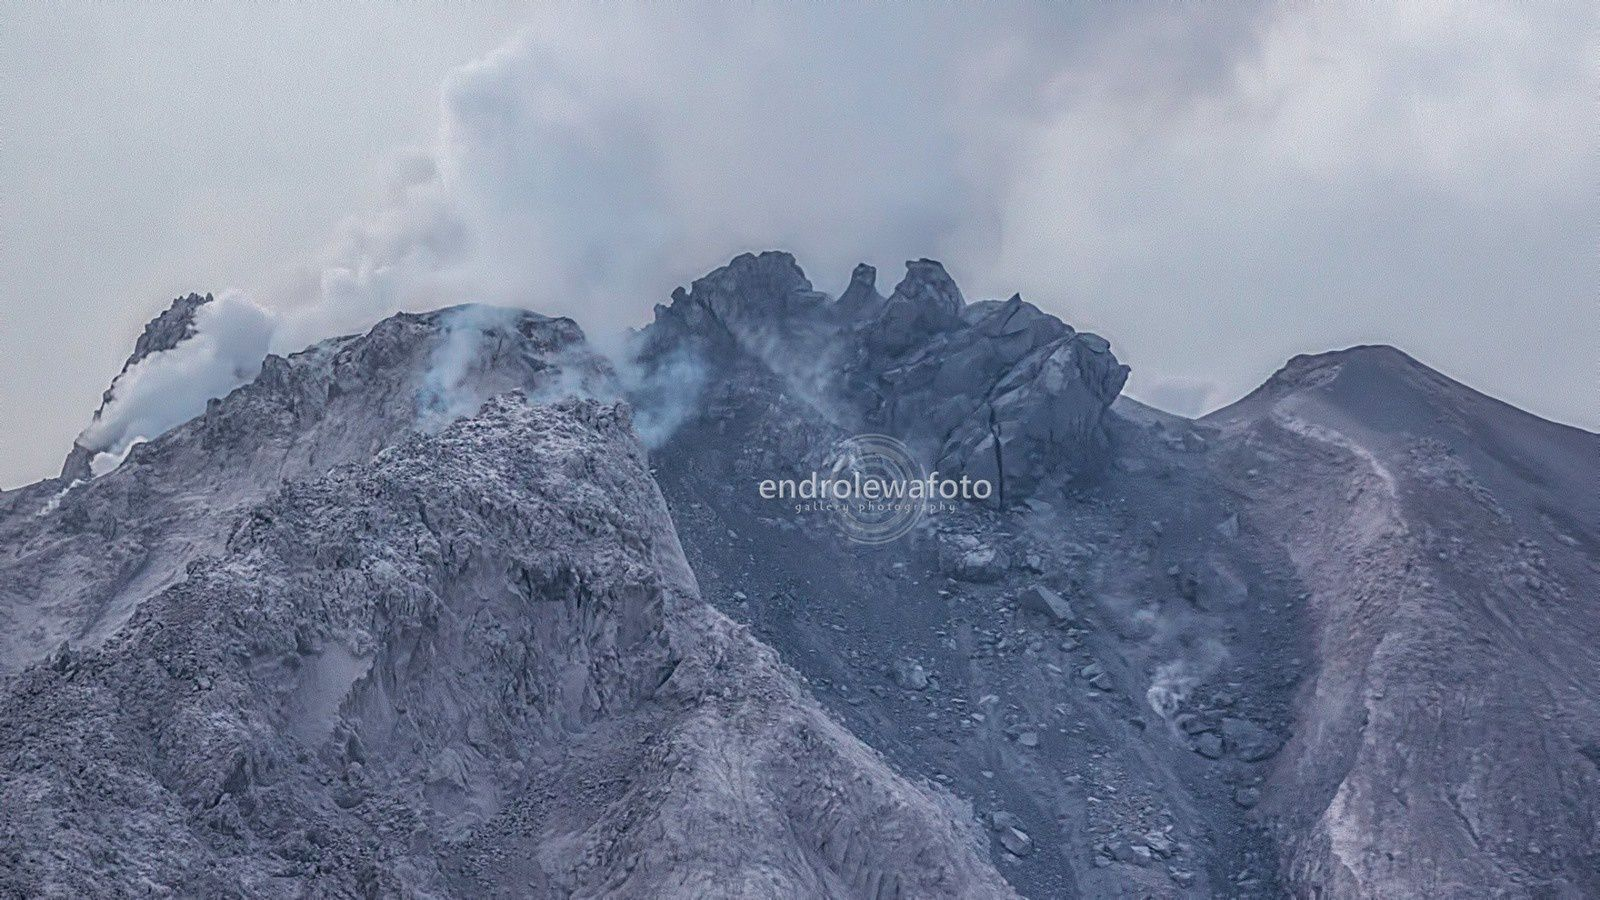 Sinabung depuis Payaung - 29.03.2016 / 17h19 - photo Endrolewa